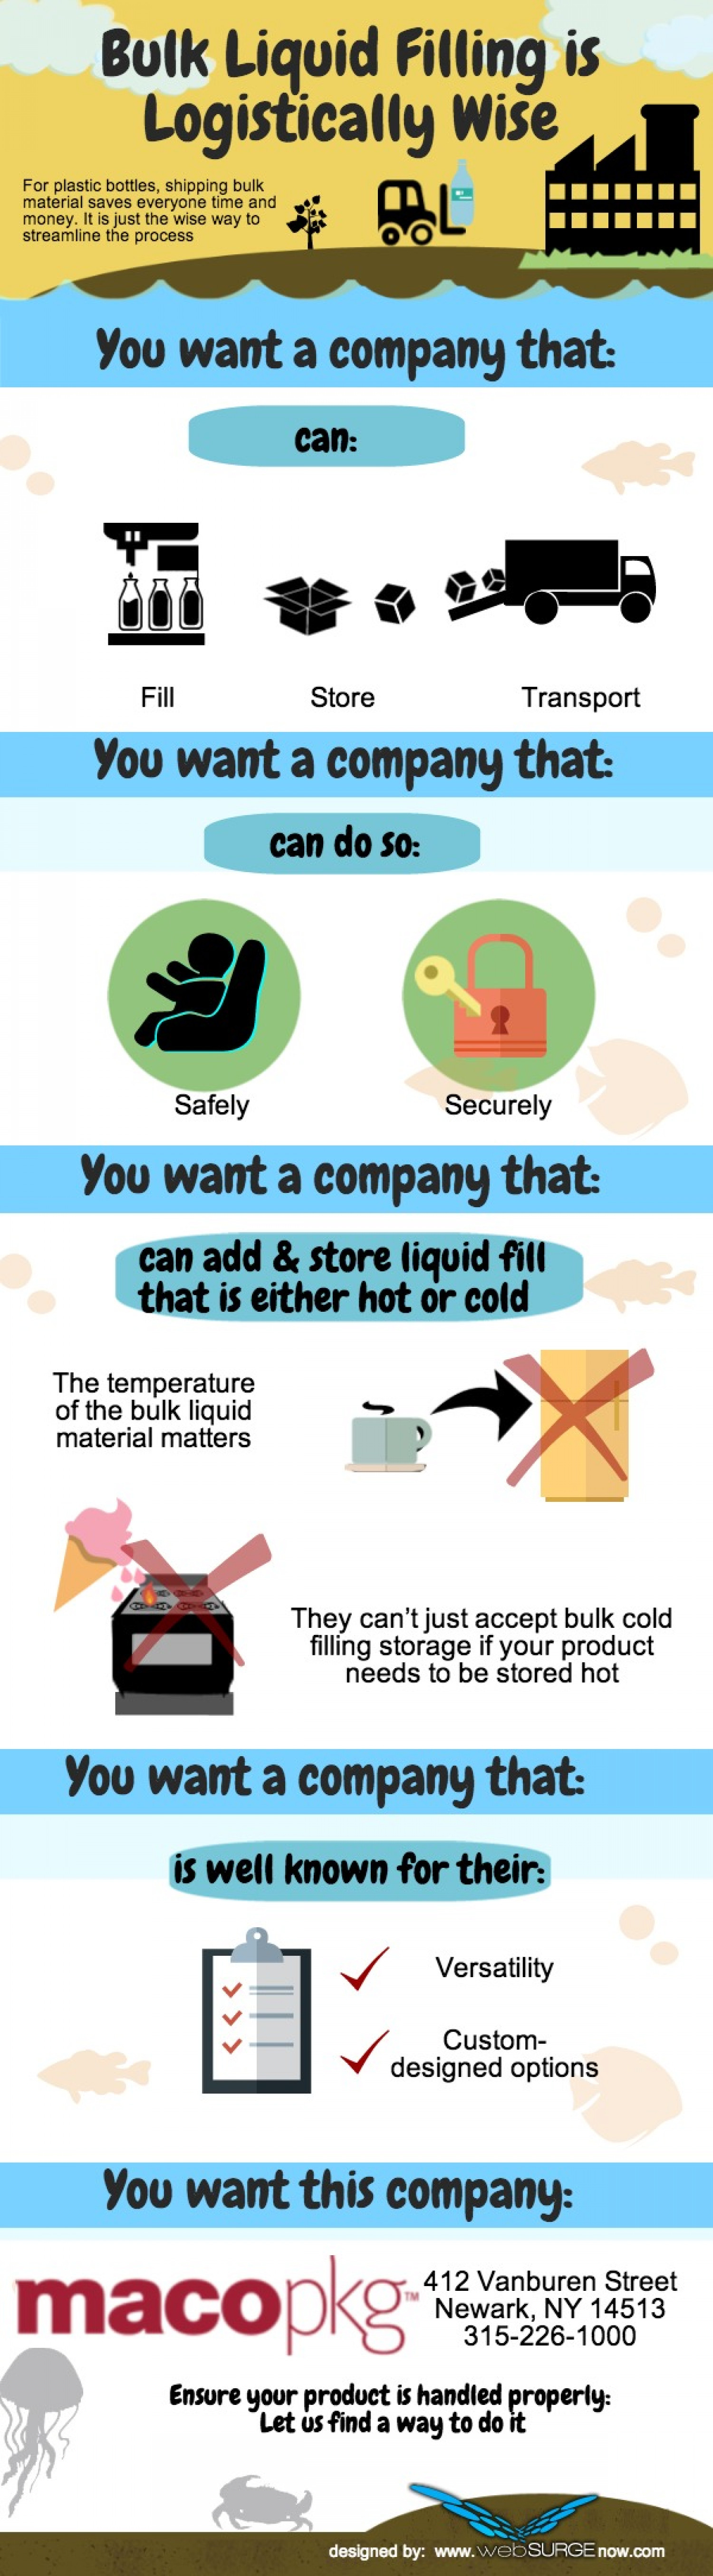 Bulk Liquid Filling is Logistically Wise Infographic